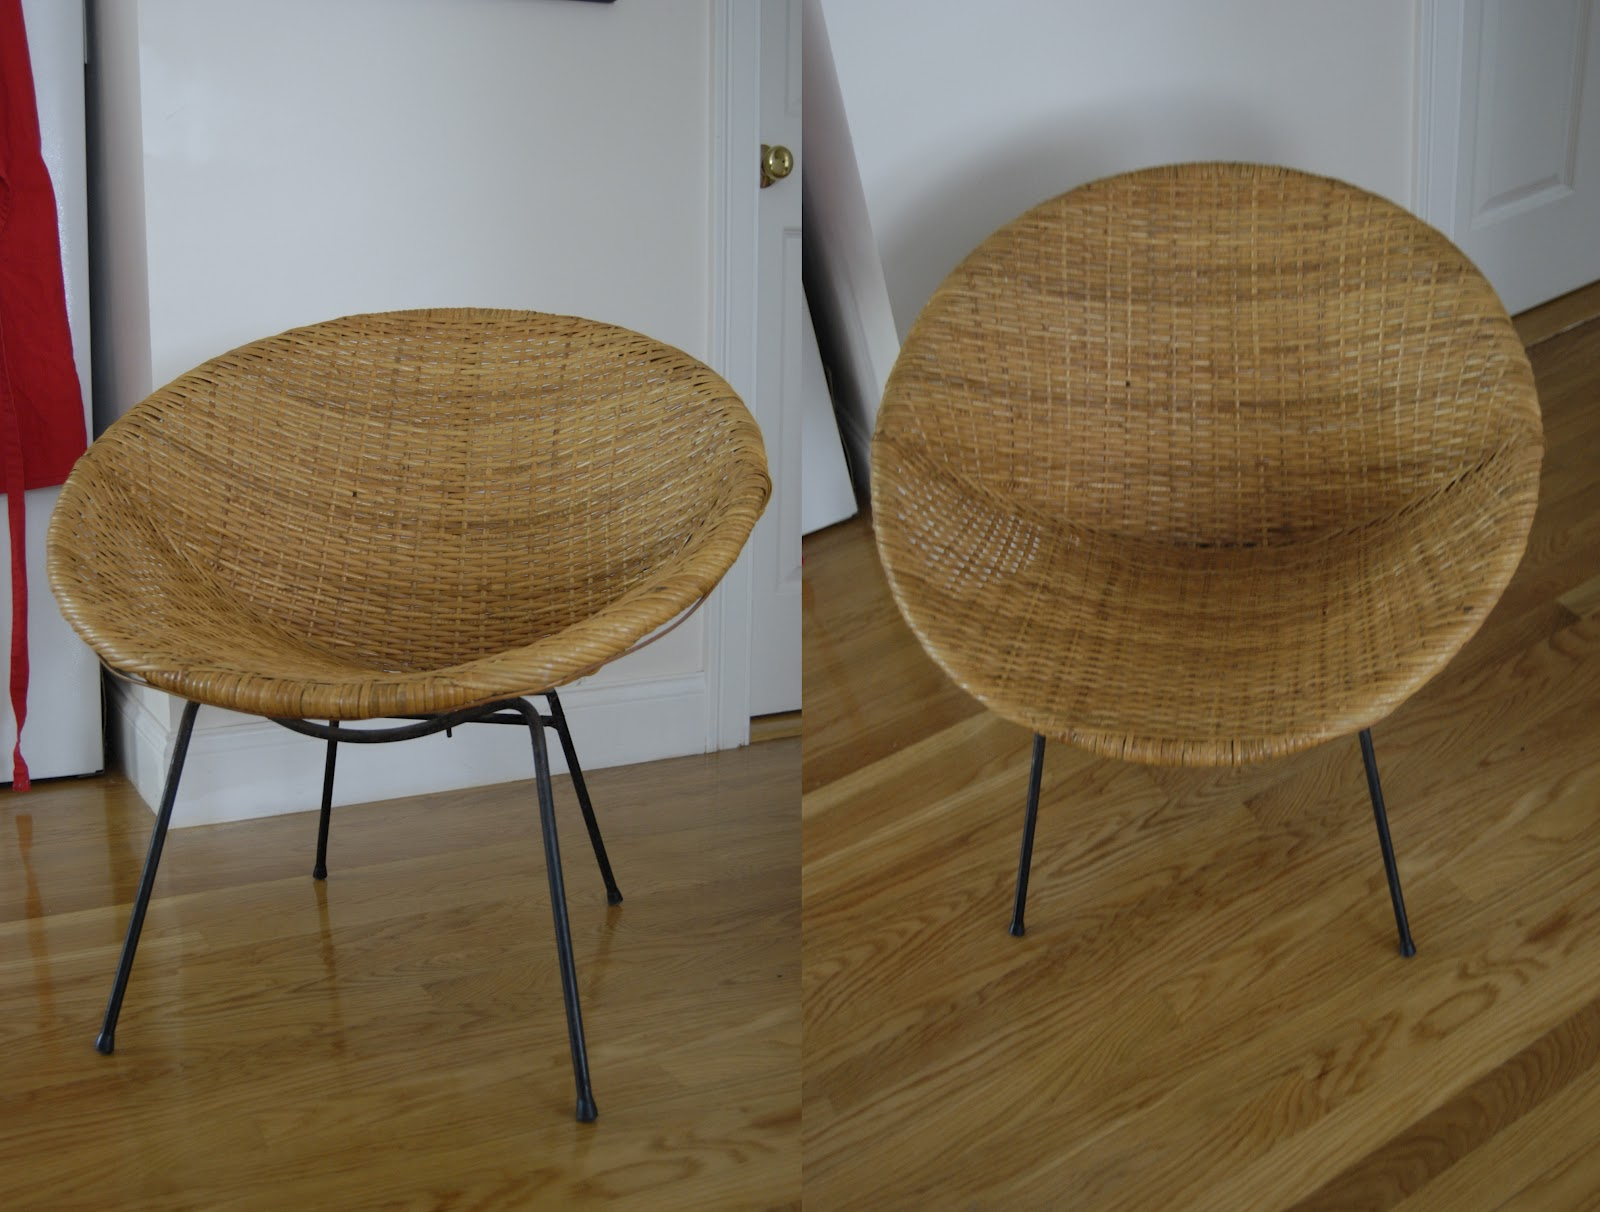 Pieces Of Anna Bargain Hunting 1960 S Round Wicker Chair